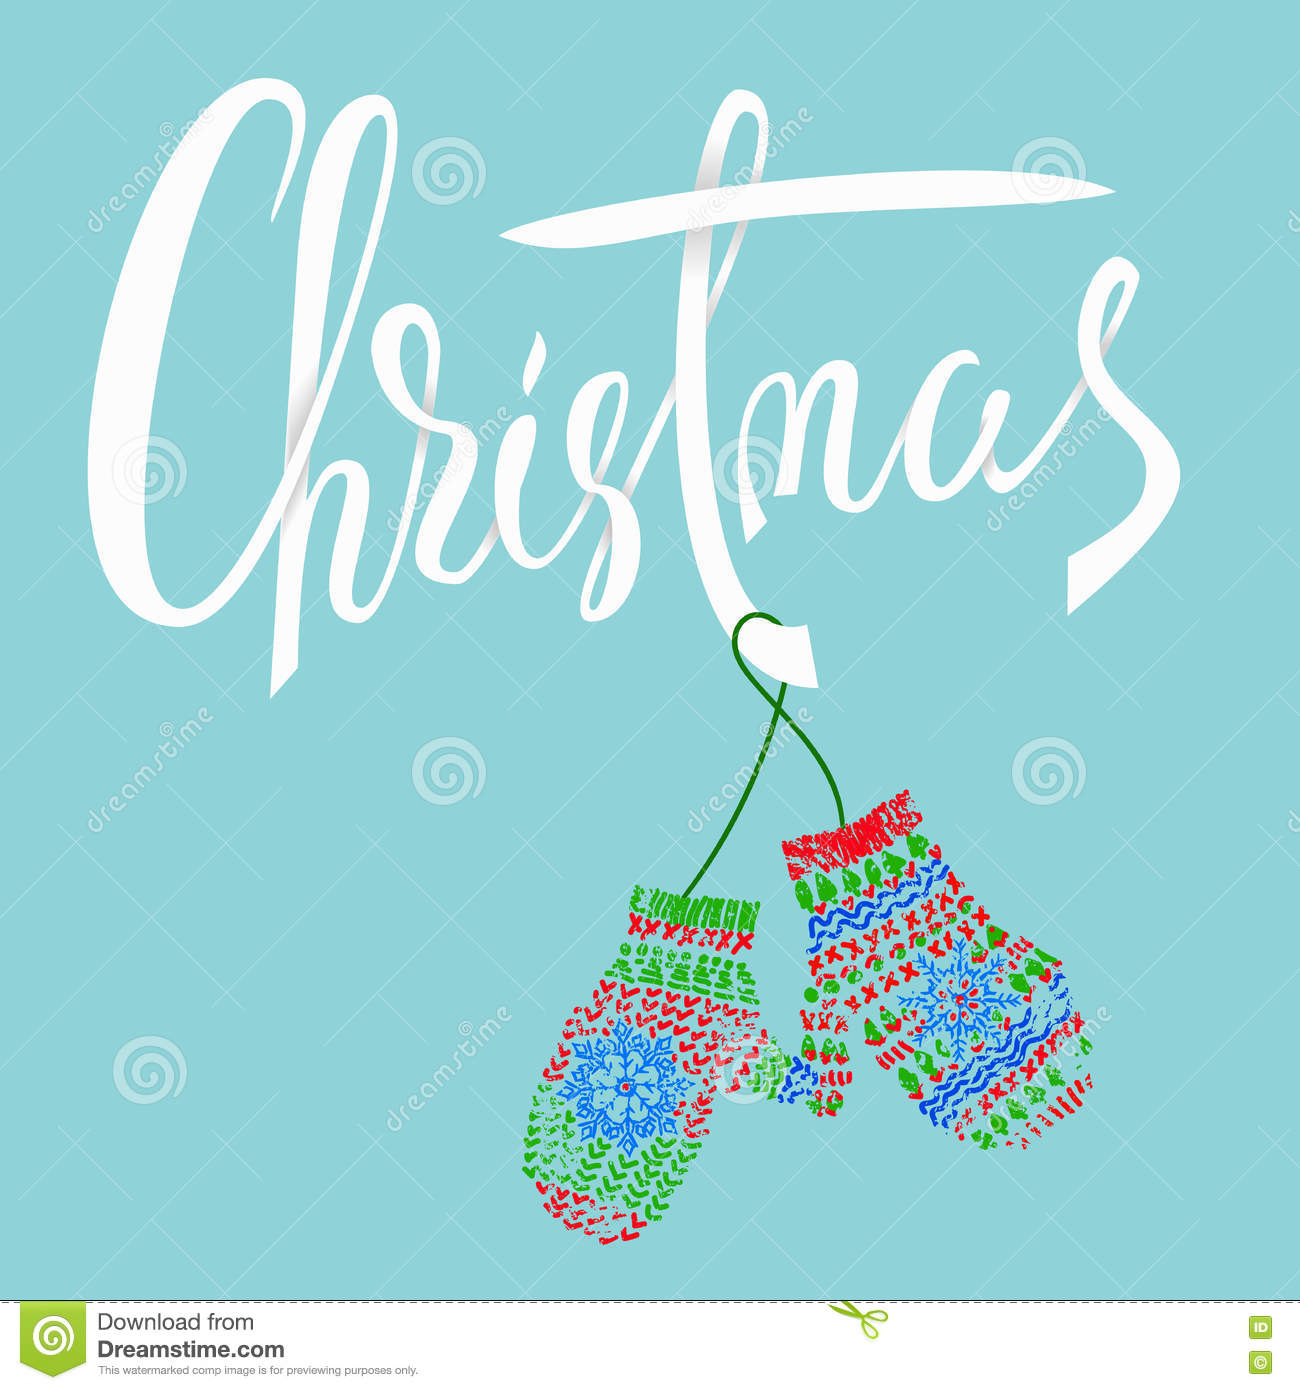 Christmas modern calligraphy for cards and